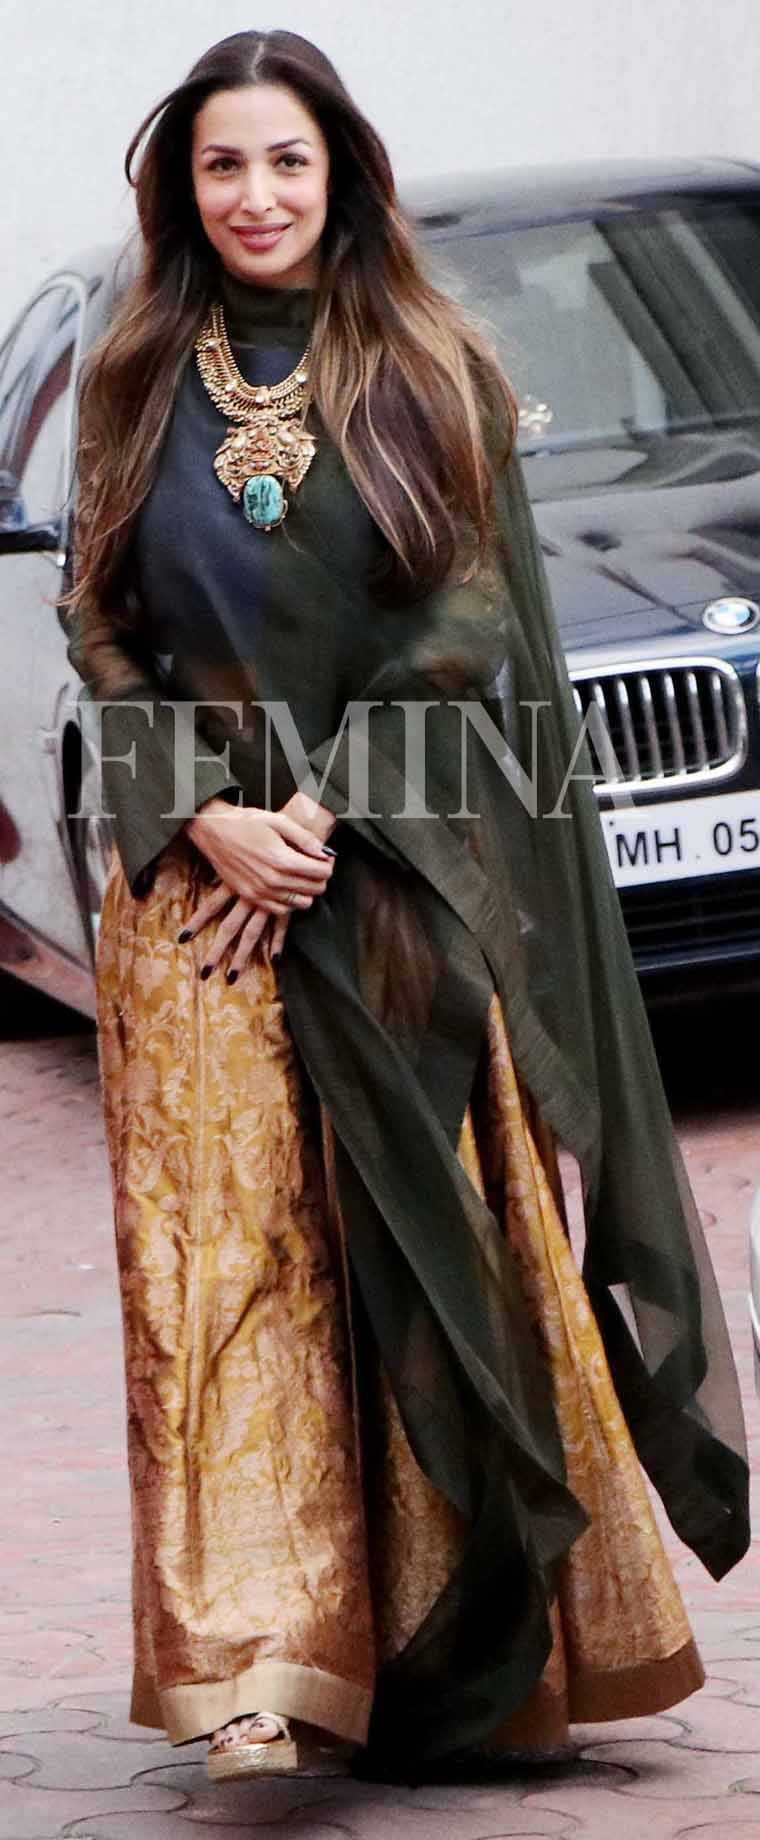 MALAIKA ARORA KHAN: Designer Payal Khandwala's festive collection was a fusion of feminine lehengas in brocade with mannish tailoring—here Malaika wears a shirt-style, high-collared top over her gold skirt.